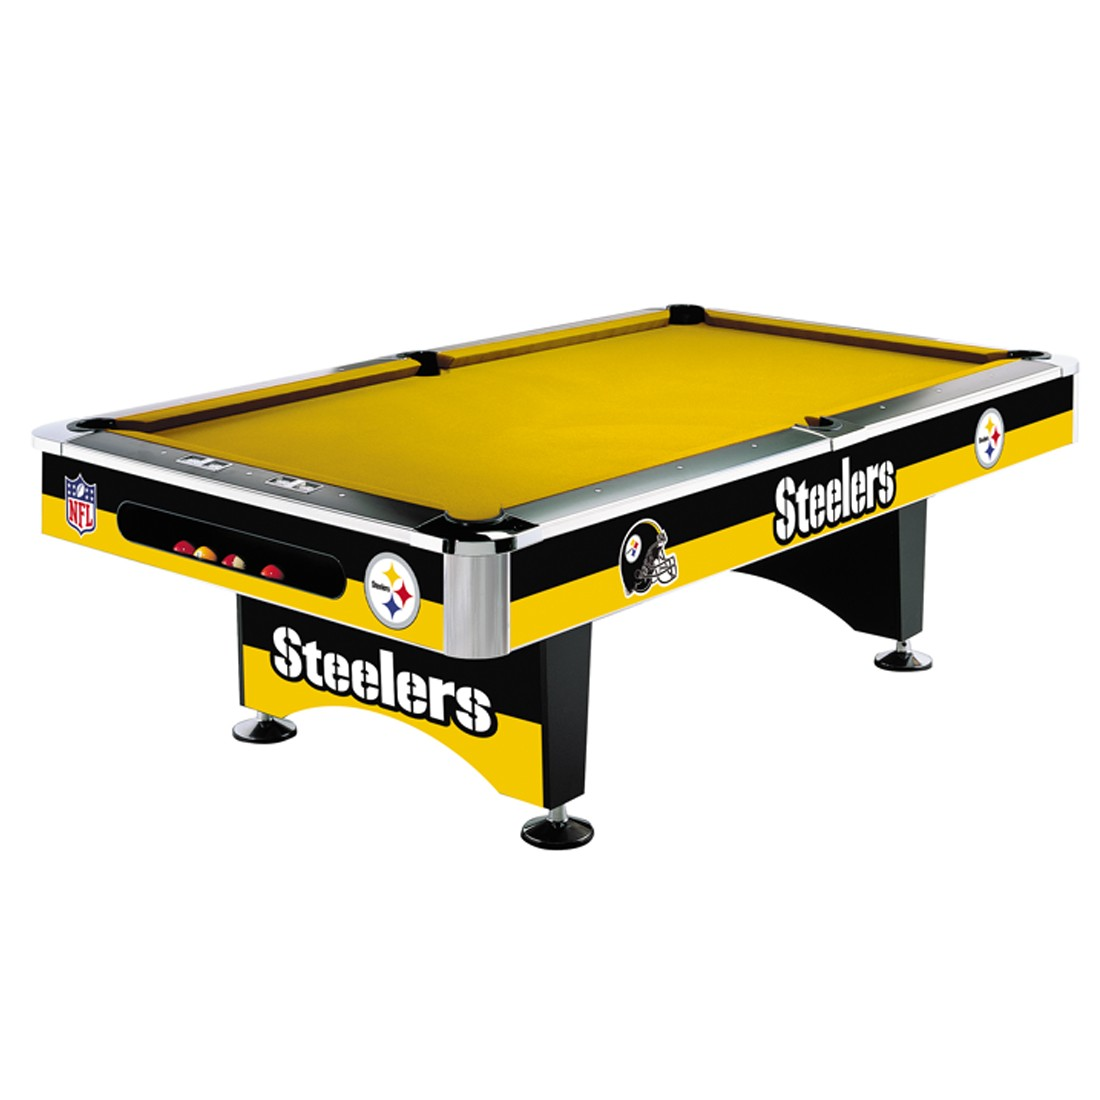 PITTSBURGH STEELERS 8-FT. POOL TABLE